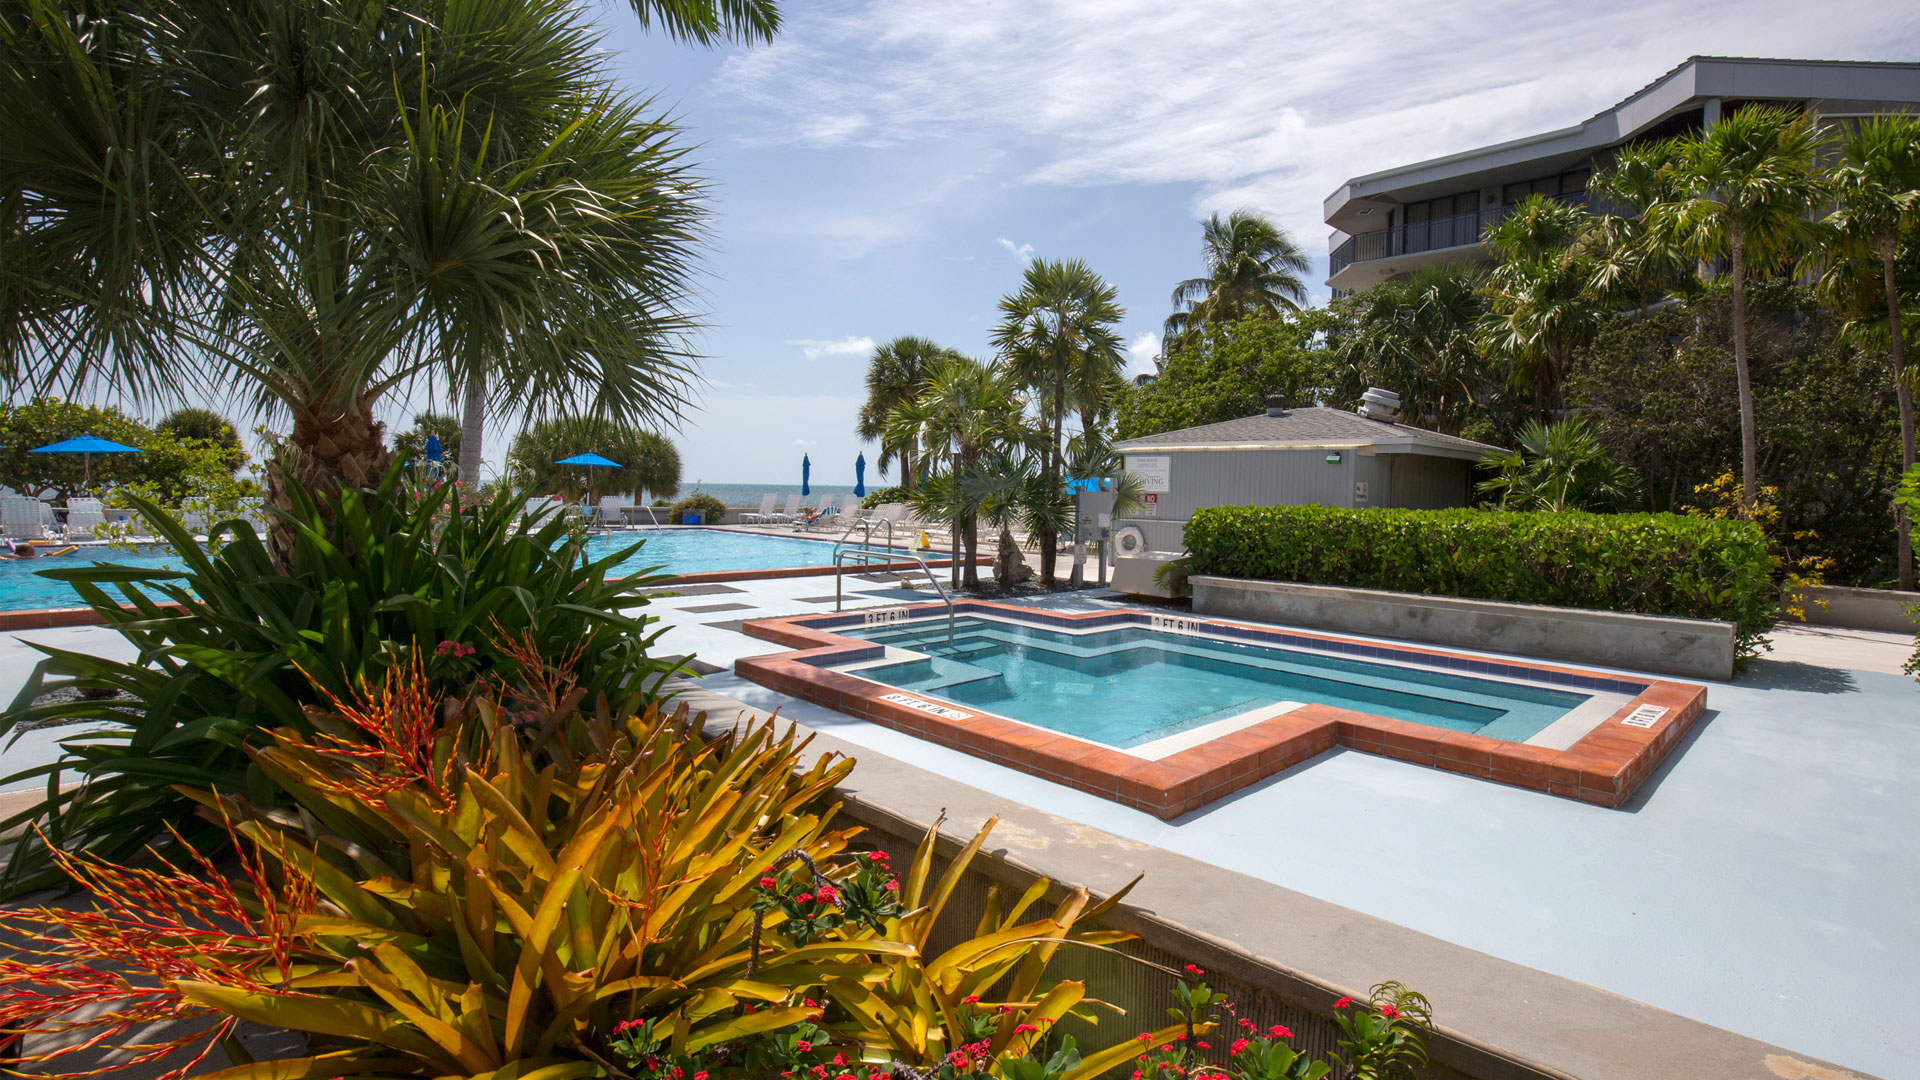 Here at All Florida Keys Property Management, we provide resort style class of service while providing over three decades of experience in Key West rentals.